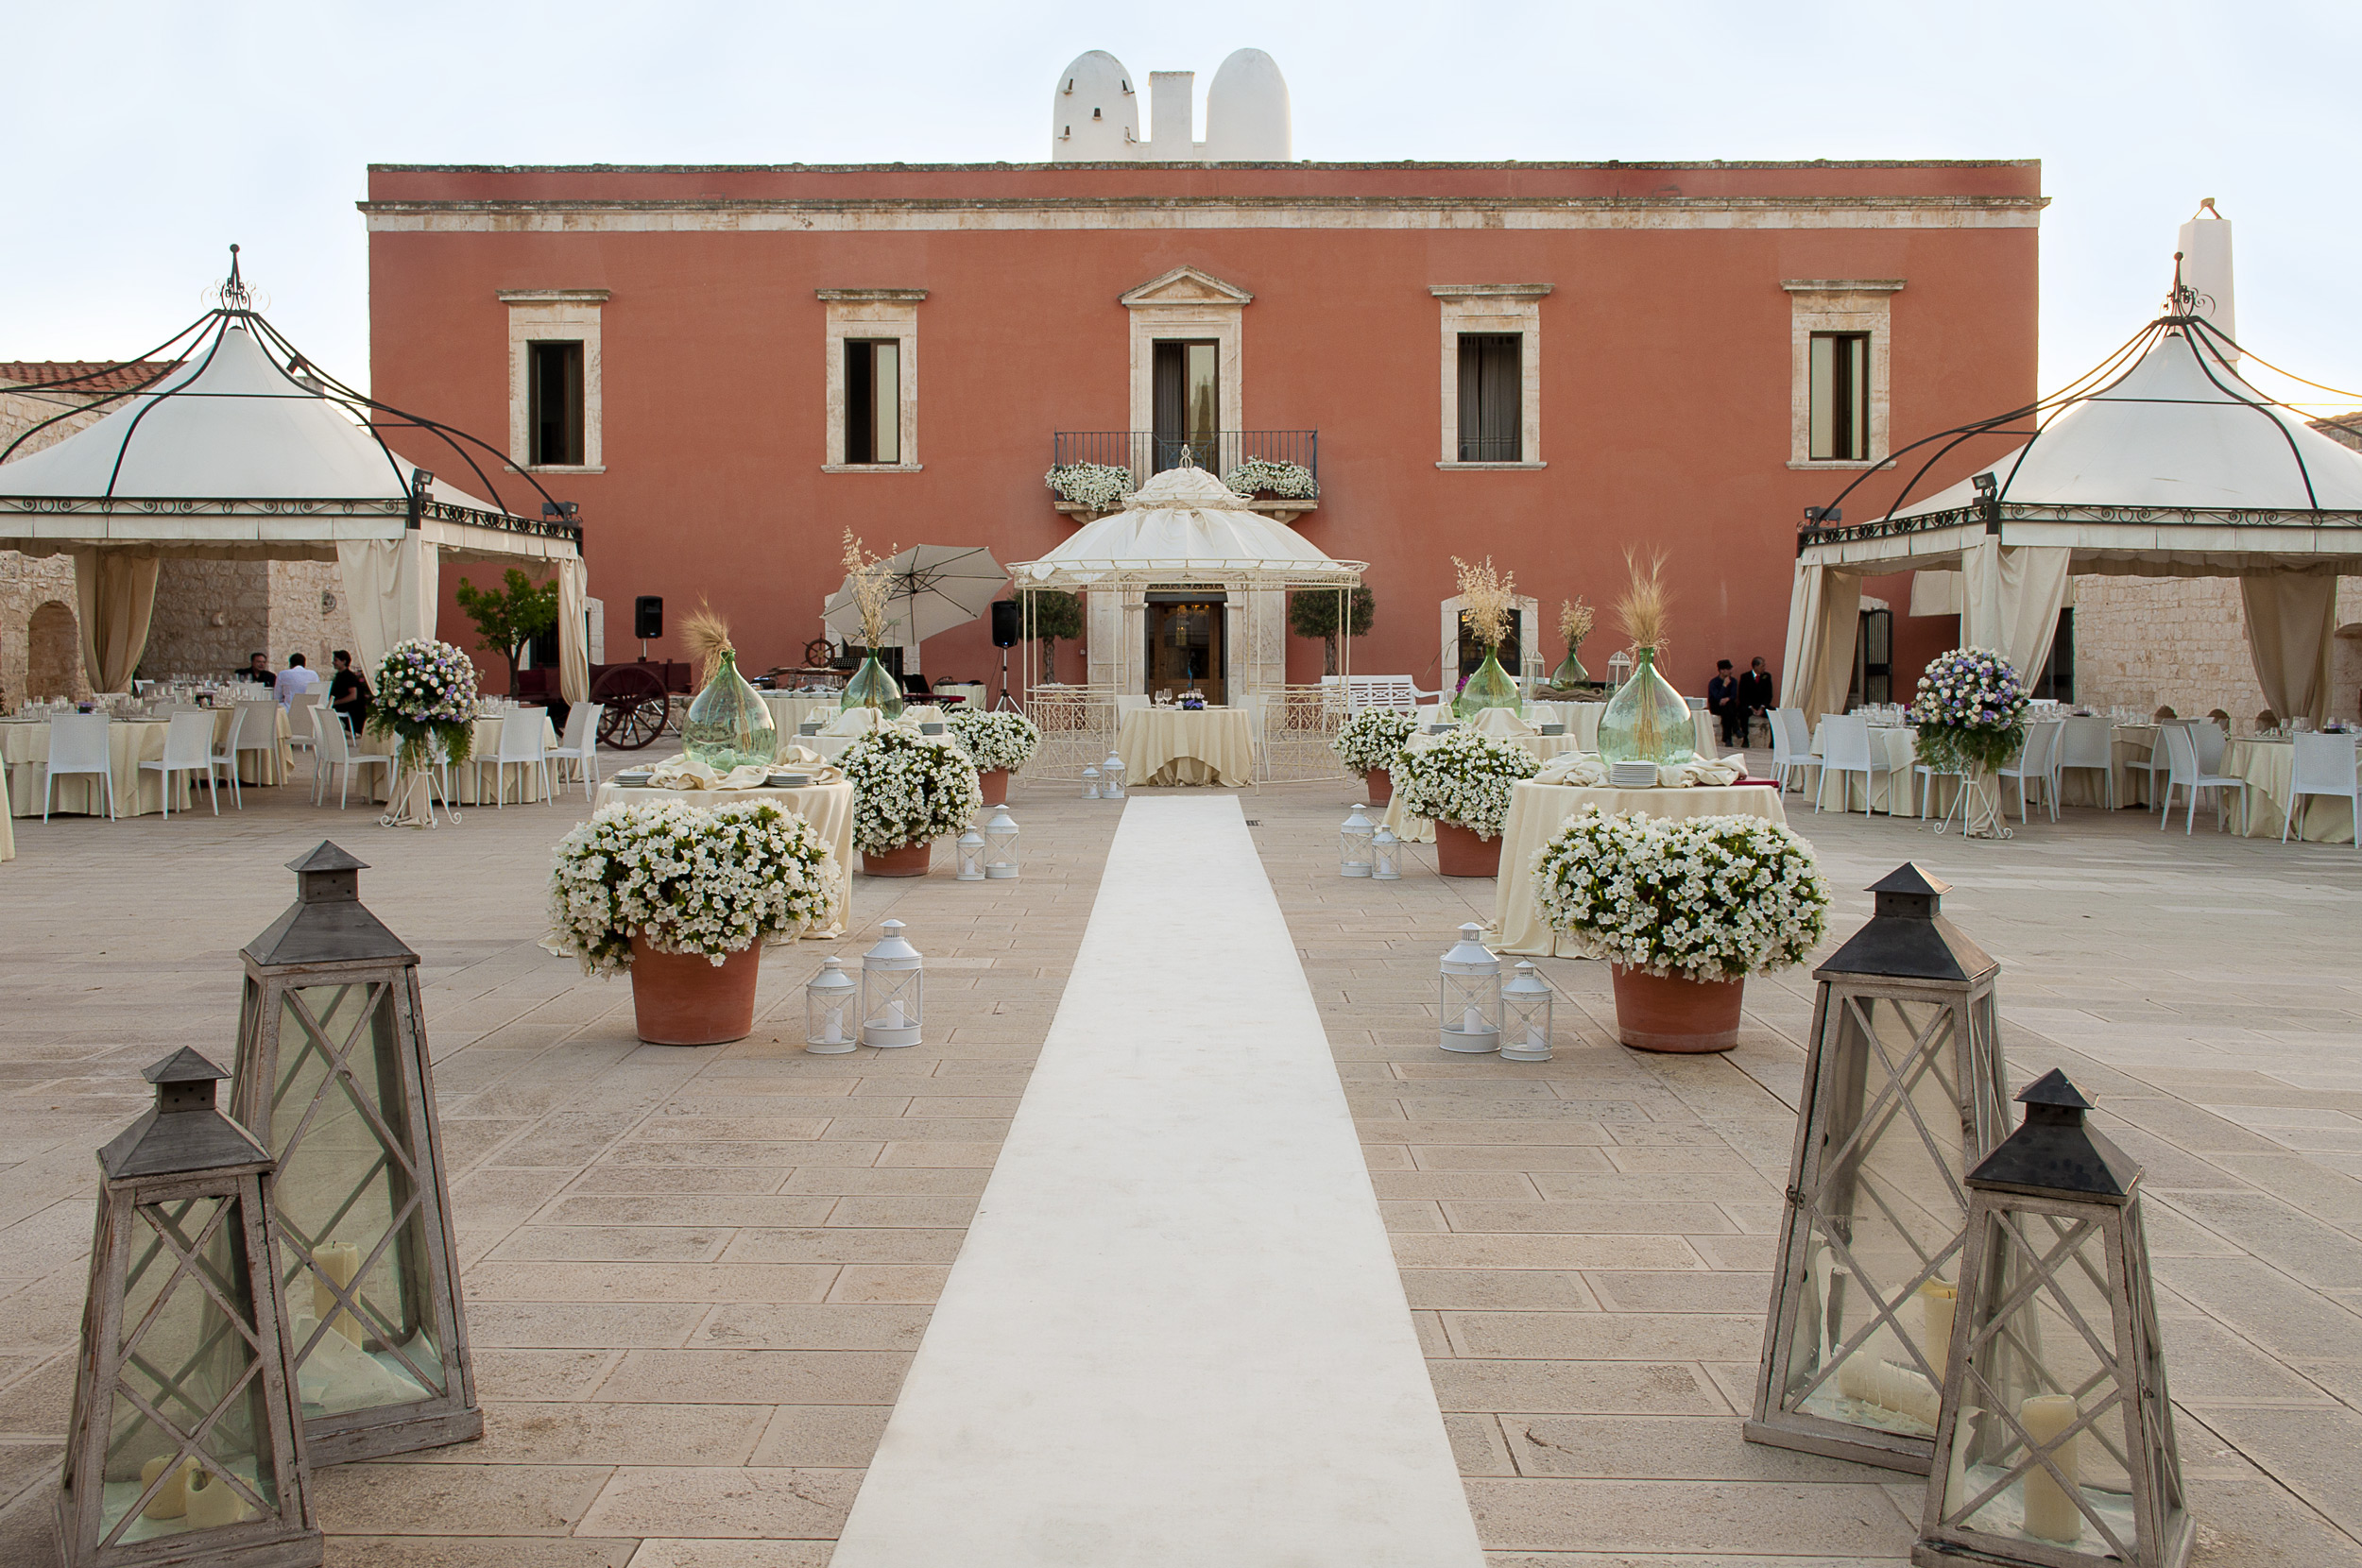 Matrimonio Country Chic Napoli : Le migliori location per matrimonio country chic a bari